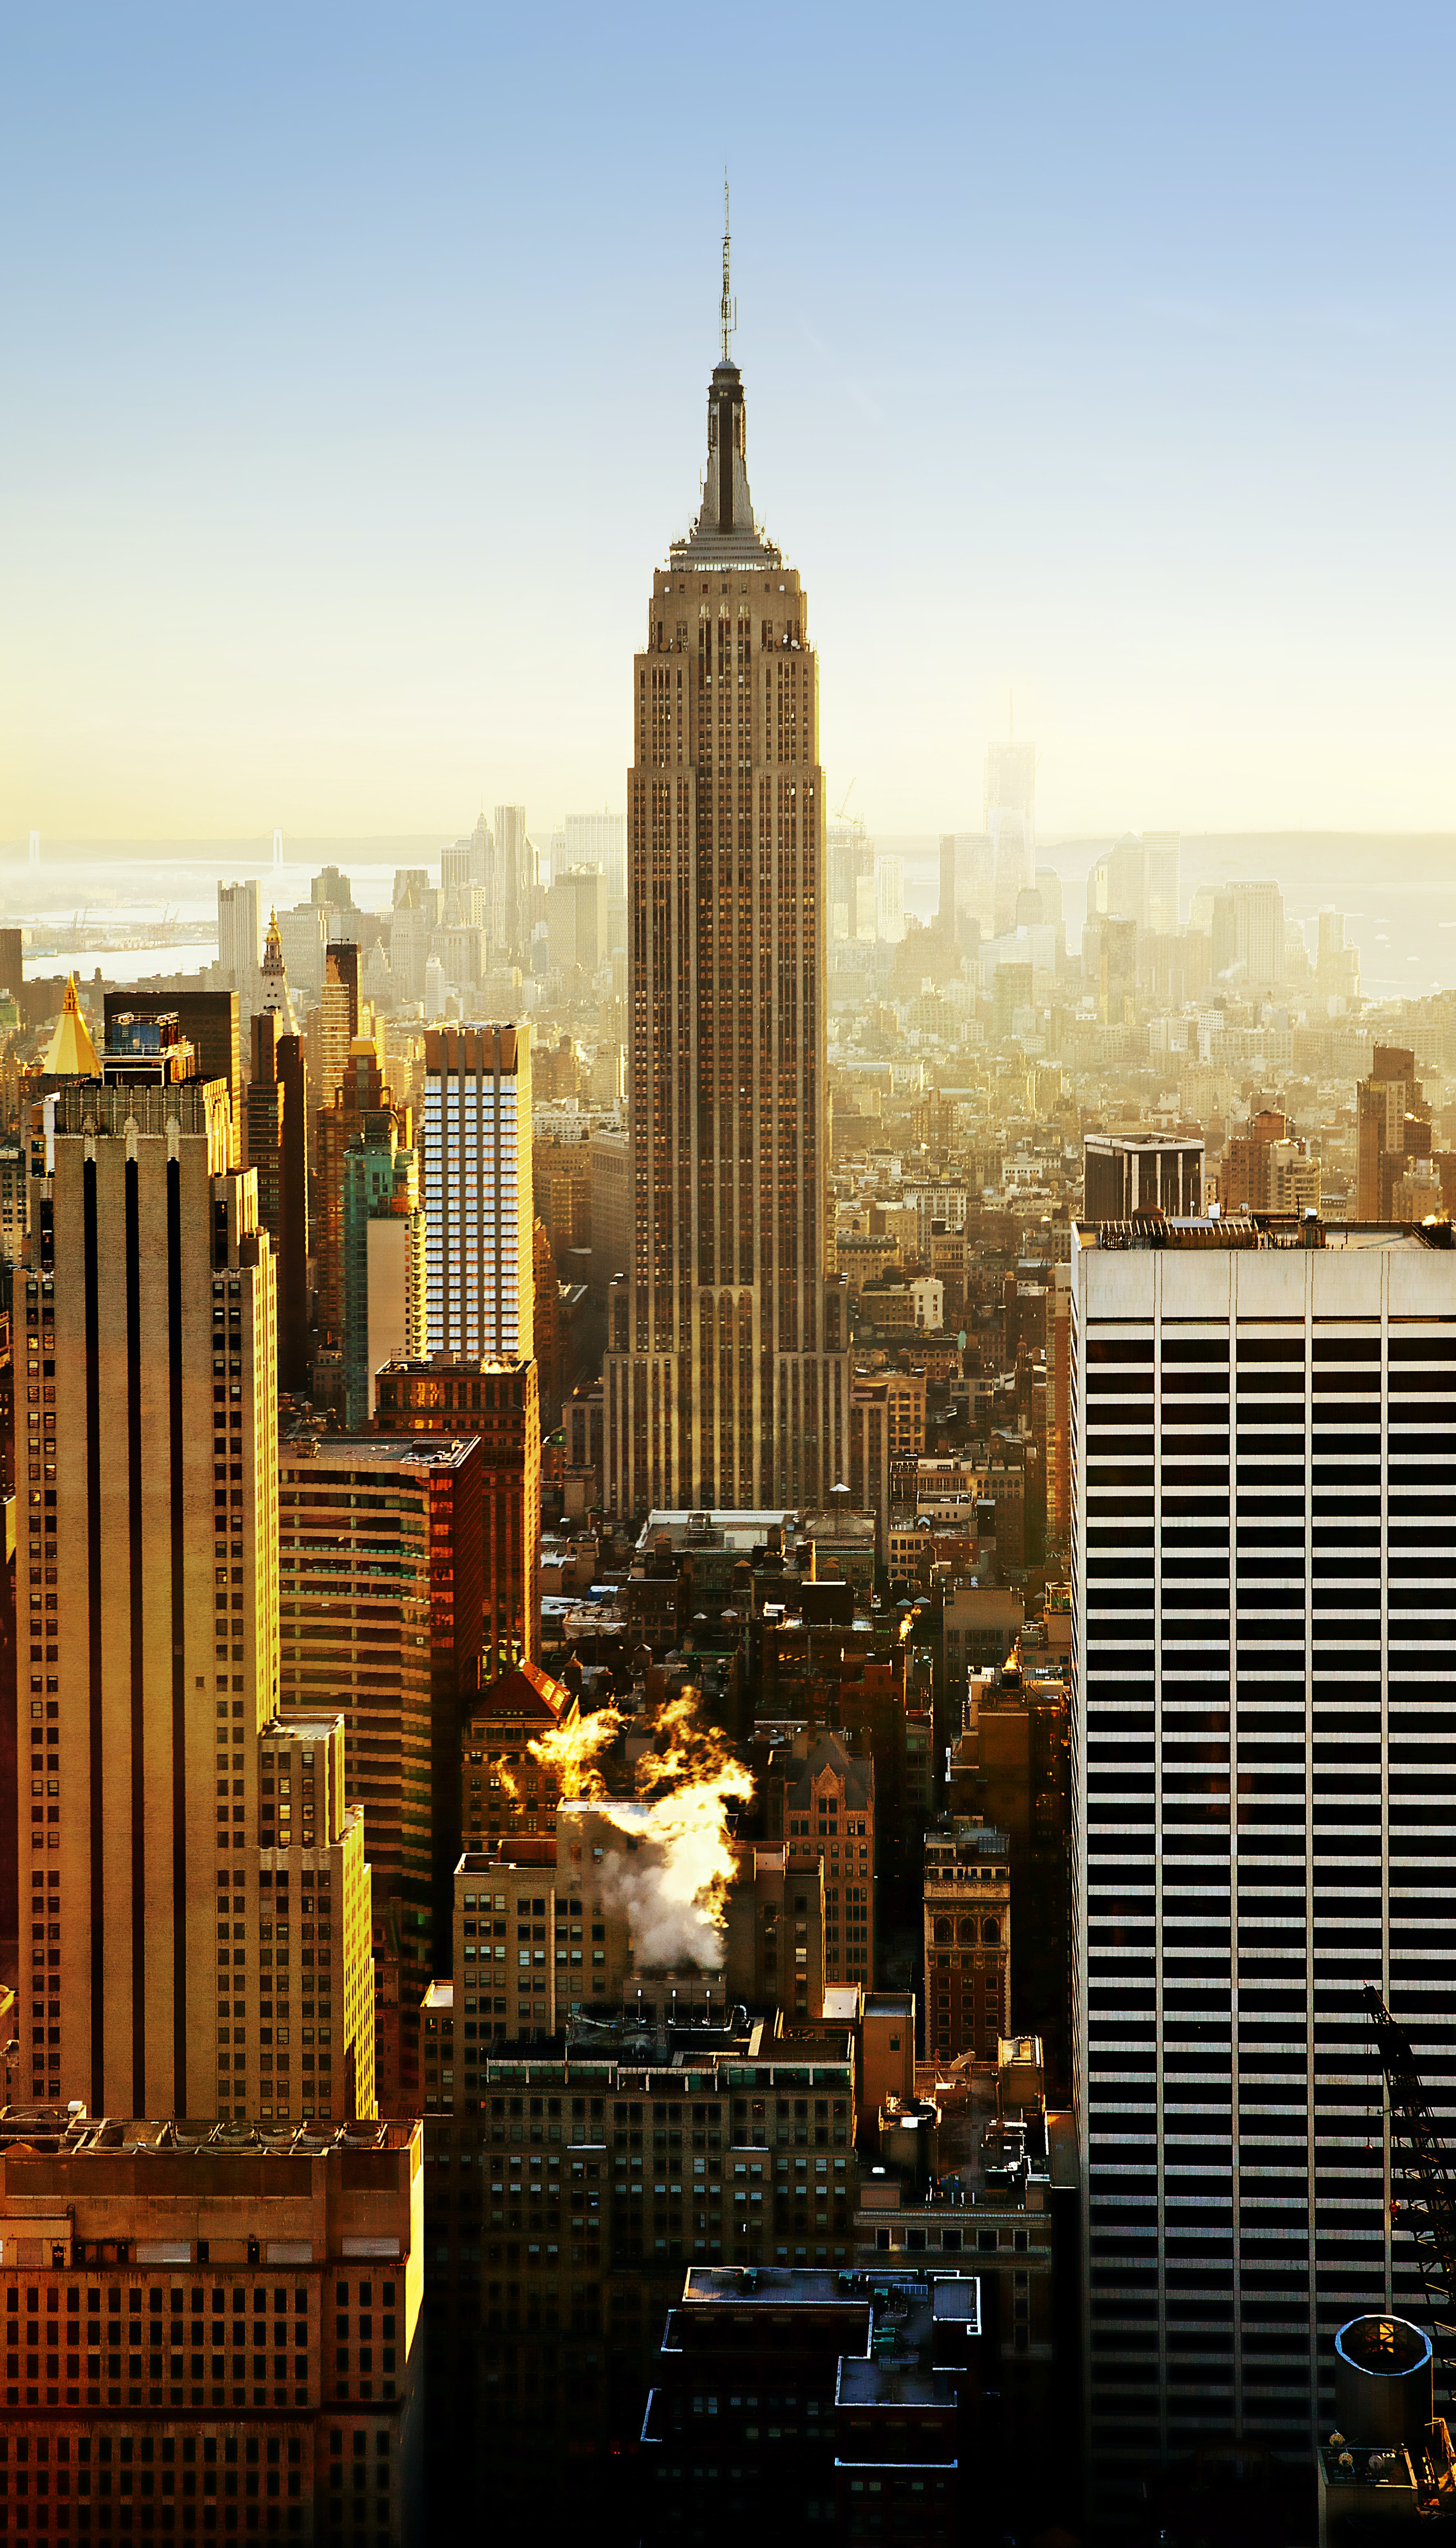 View of the Empire State Building between skyscrapers in the New York City skyline